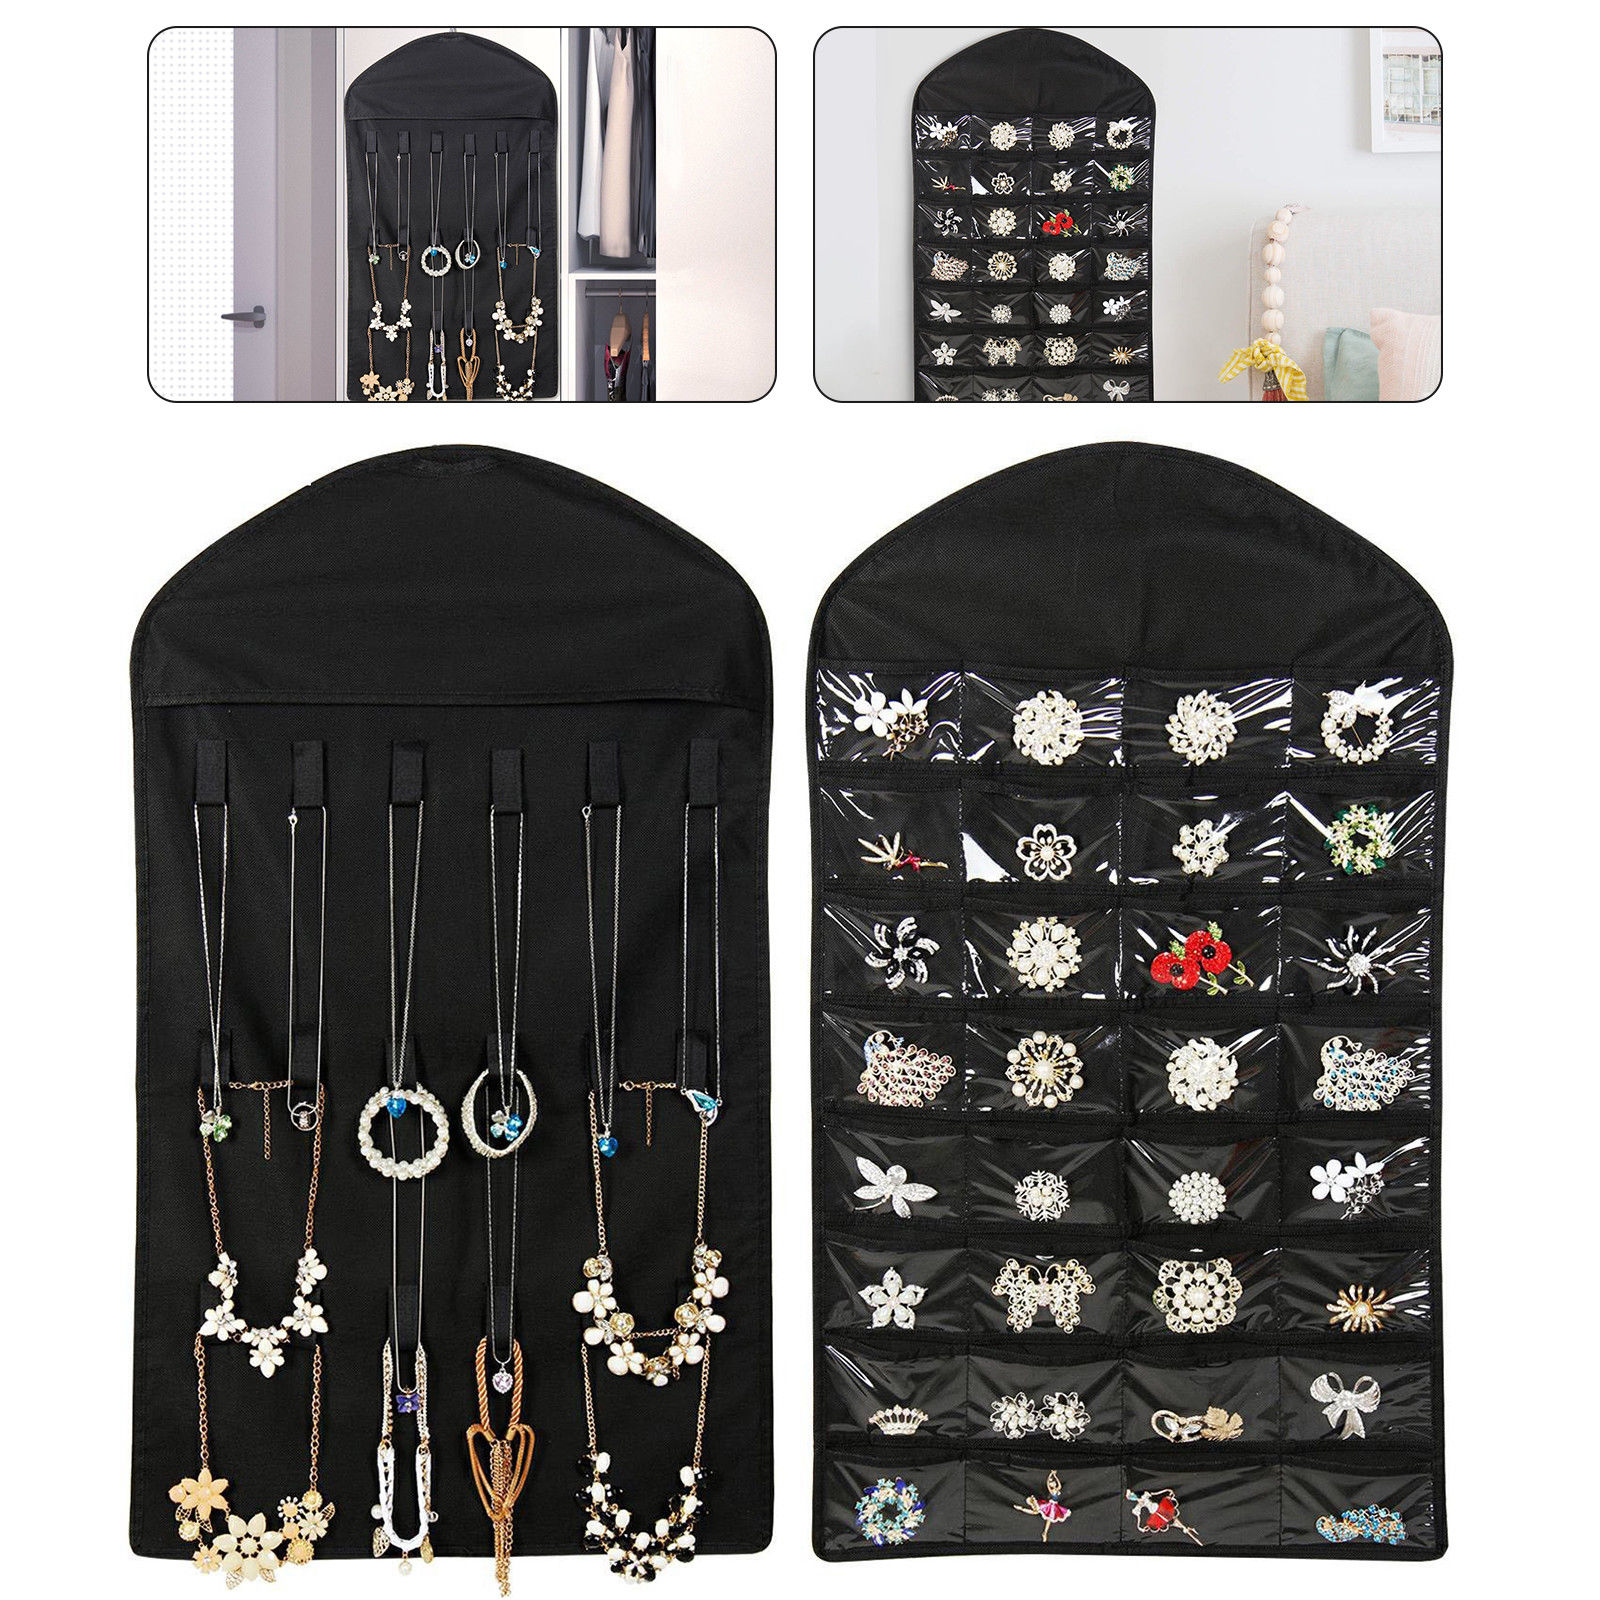 EEEKit Jewelry Hanging Non-Woven Organizer Holder 32 Pockets 18 Hook and Loops Black